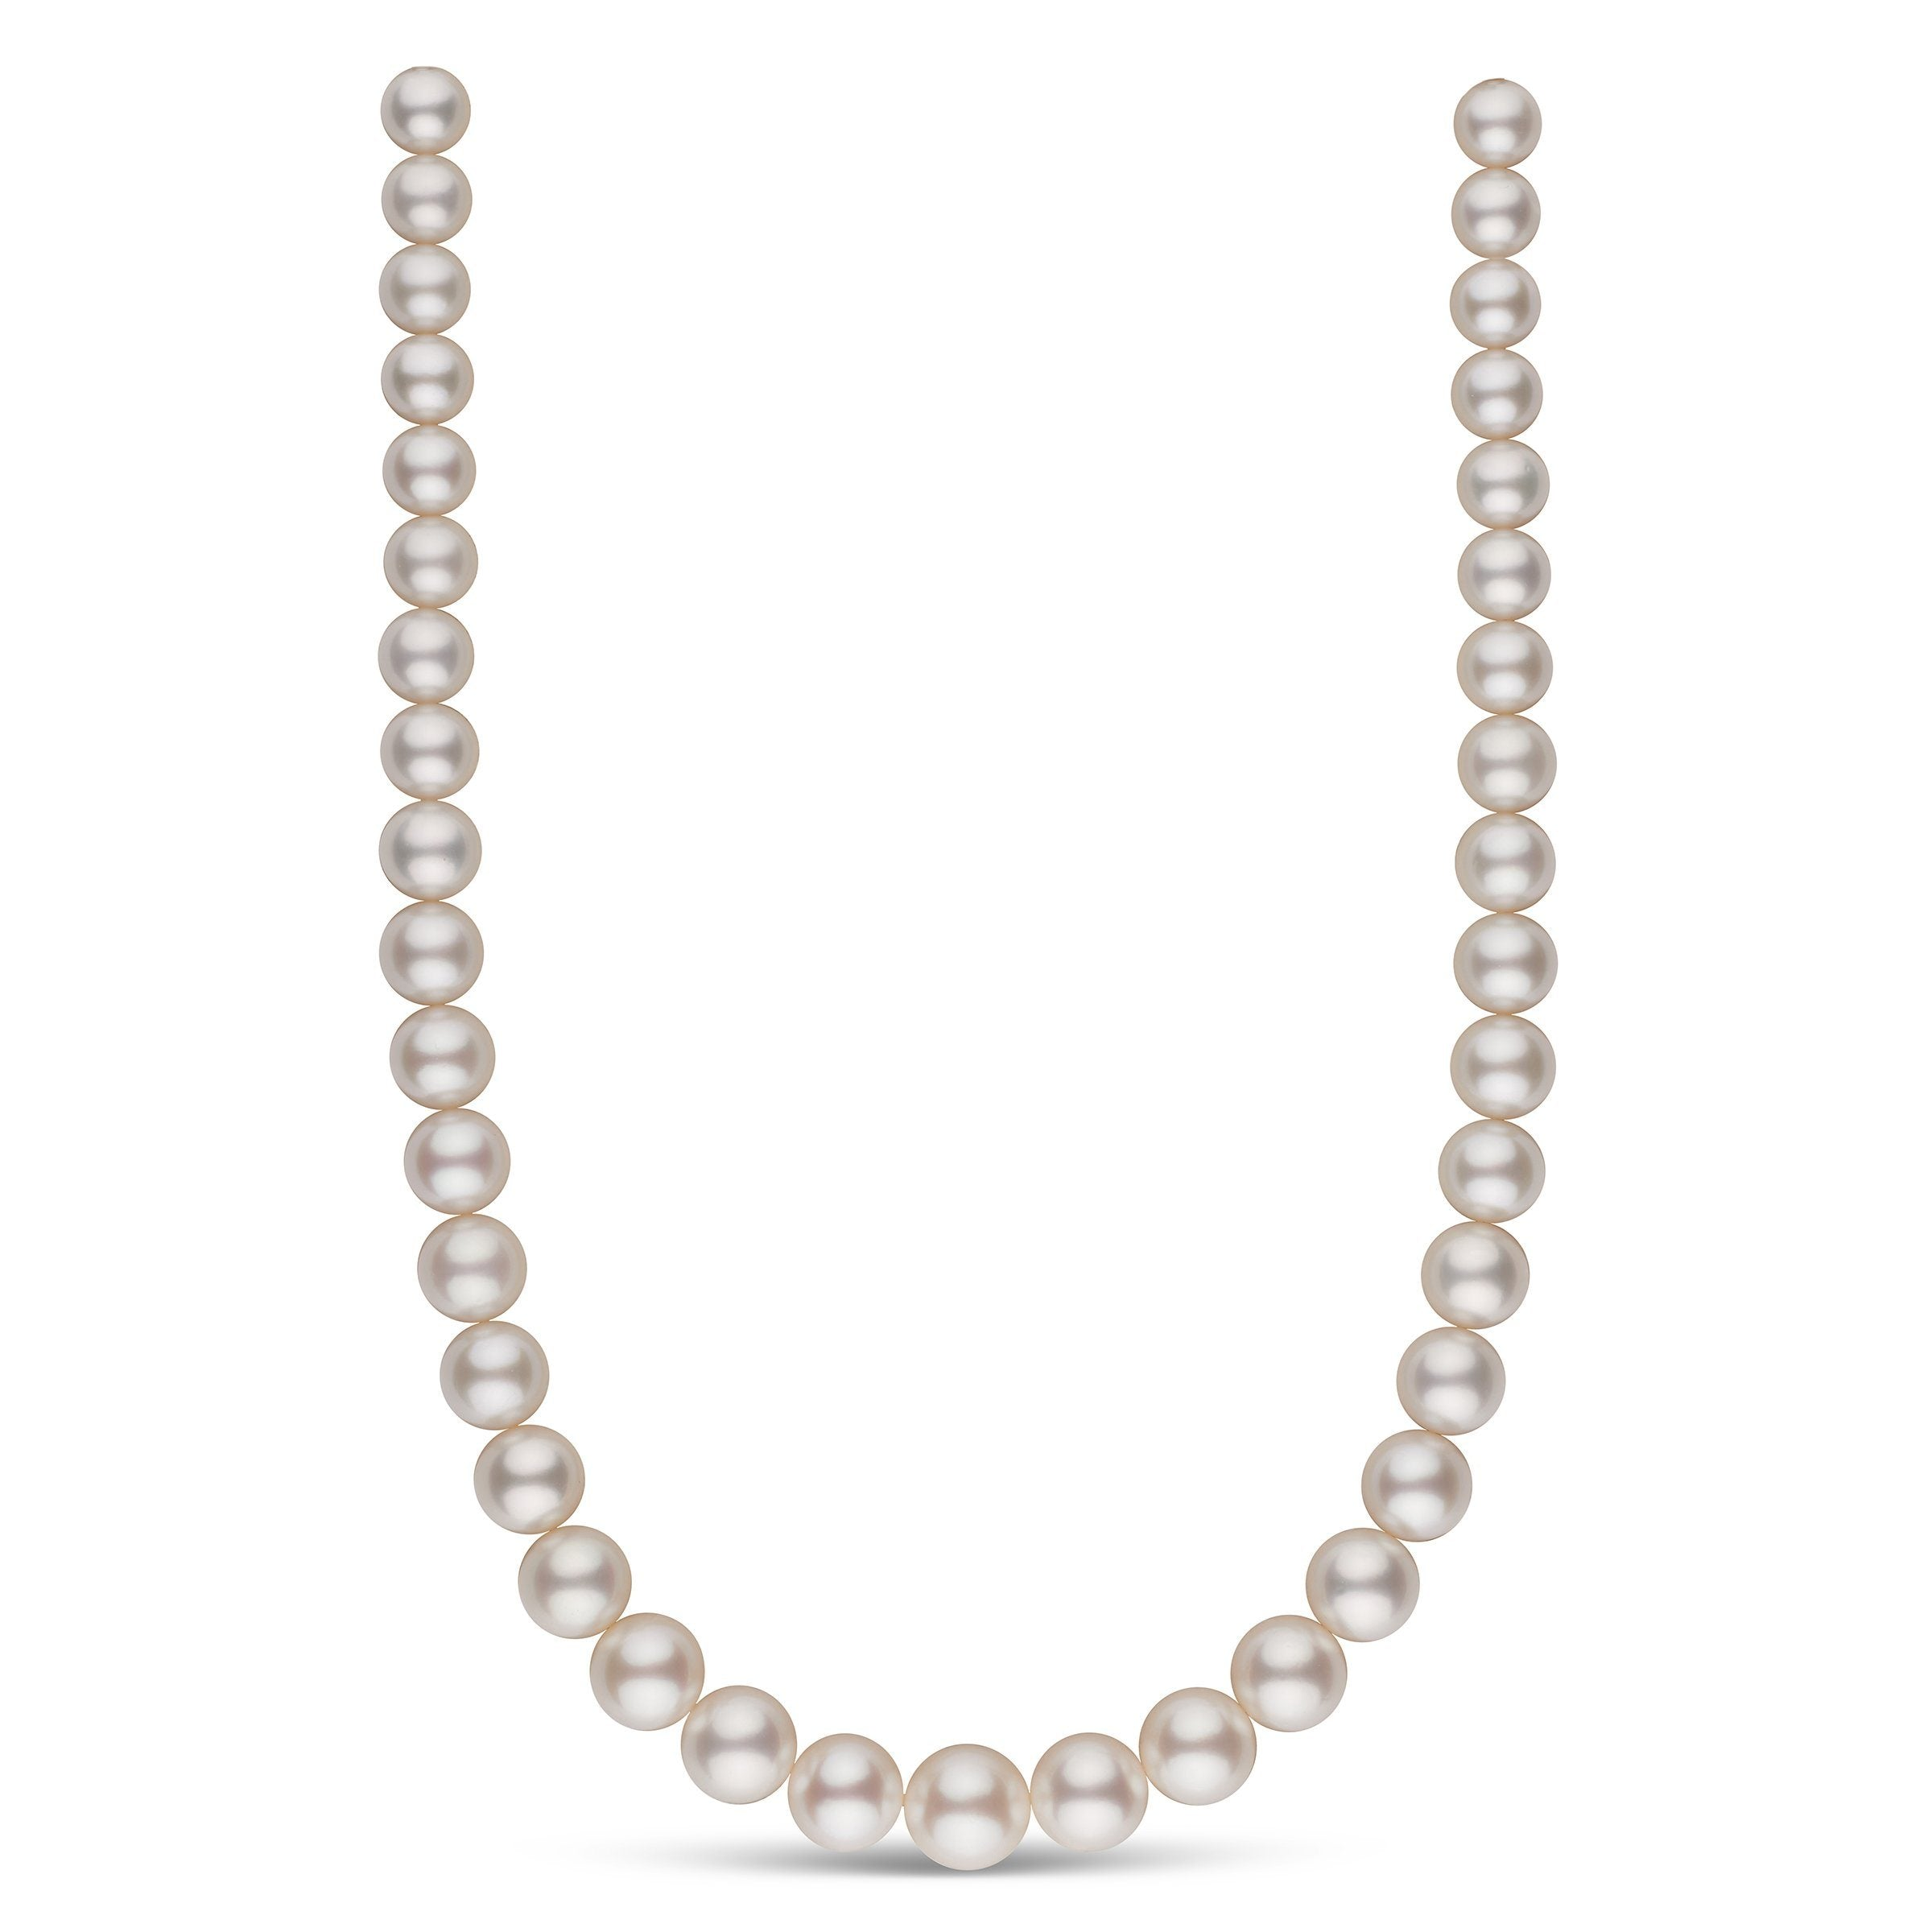 The Flower Duet White South Sea Pearl Necklace